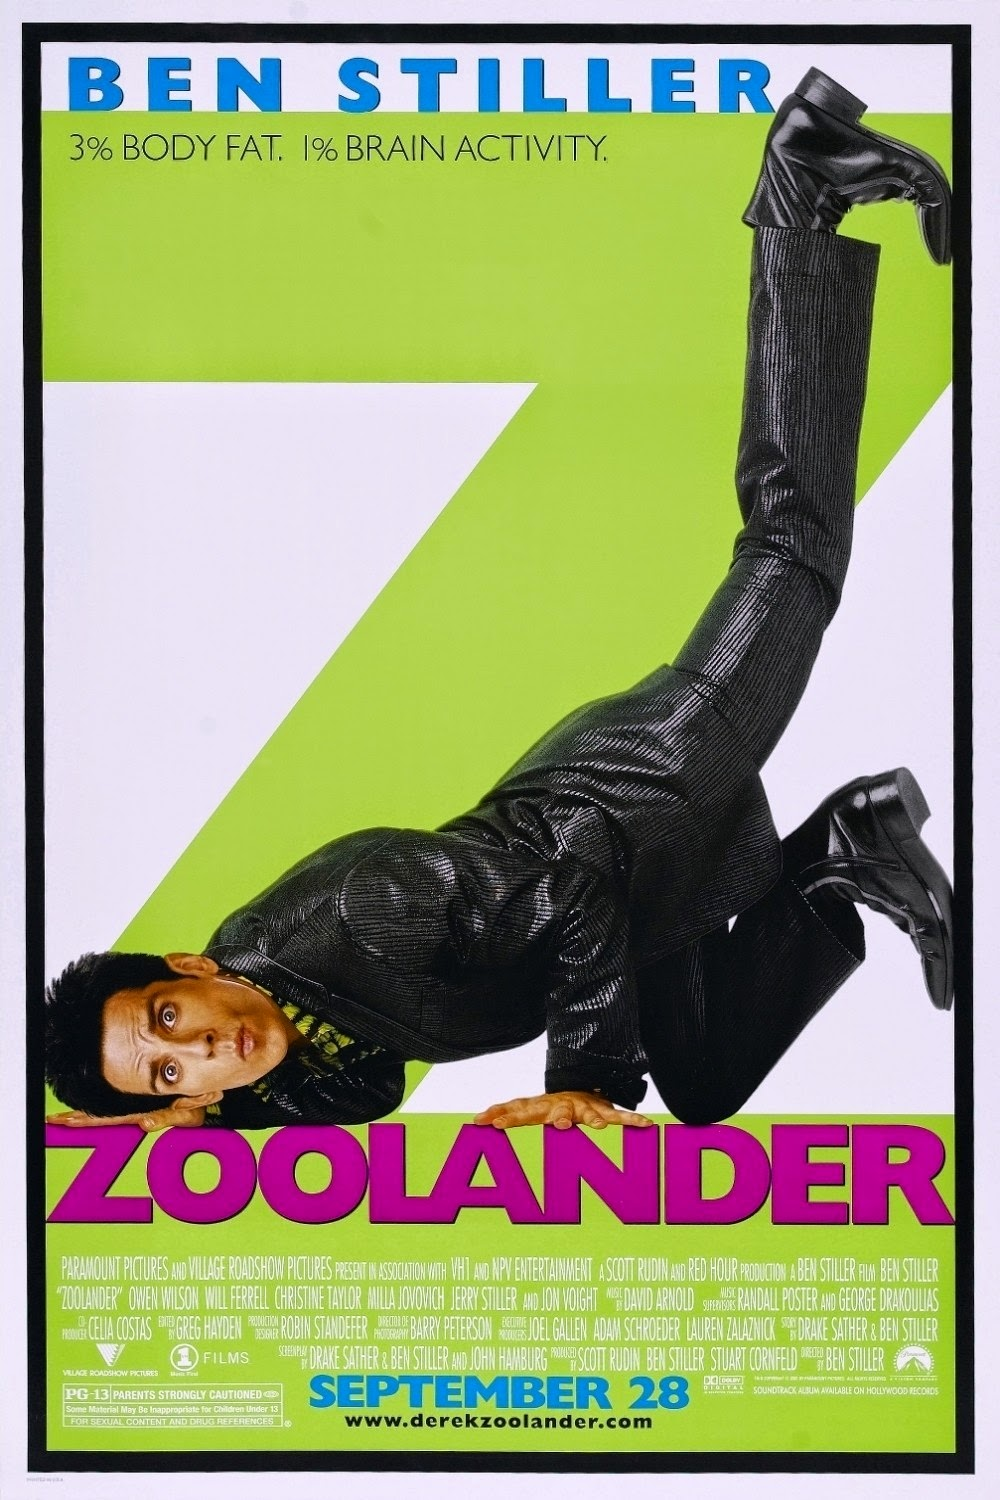 Zoolander — 0.5 out of 5 stars